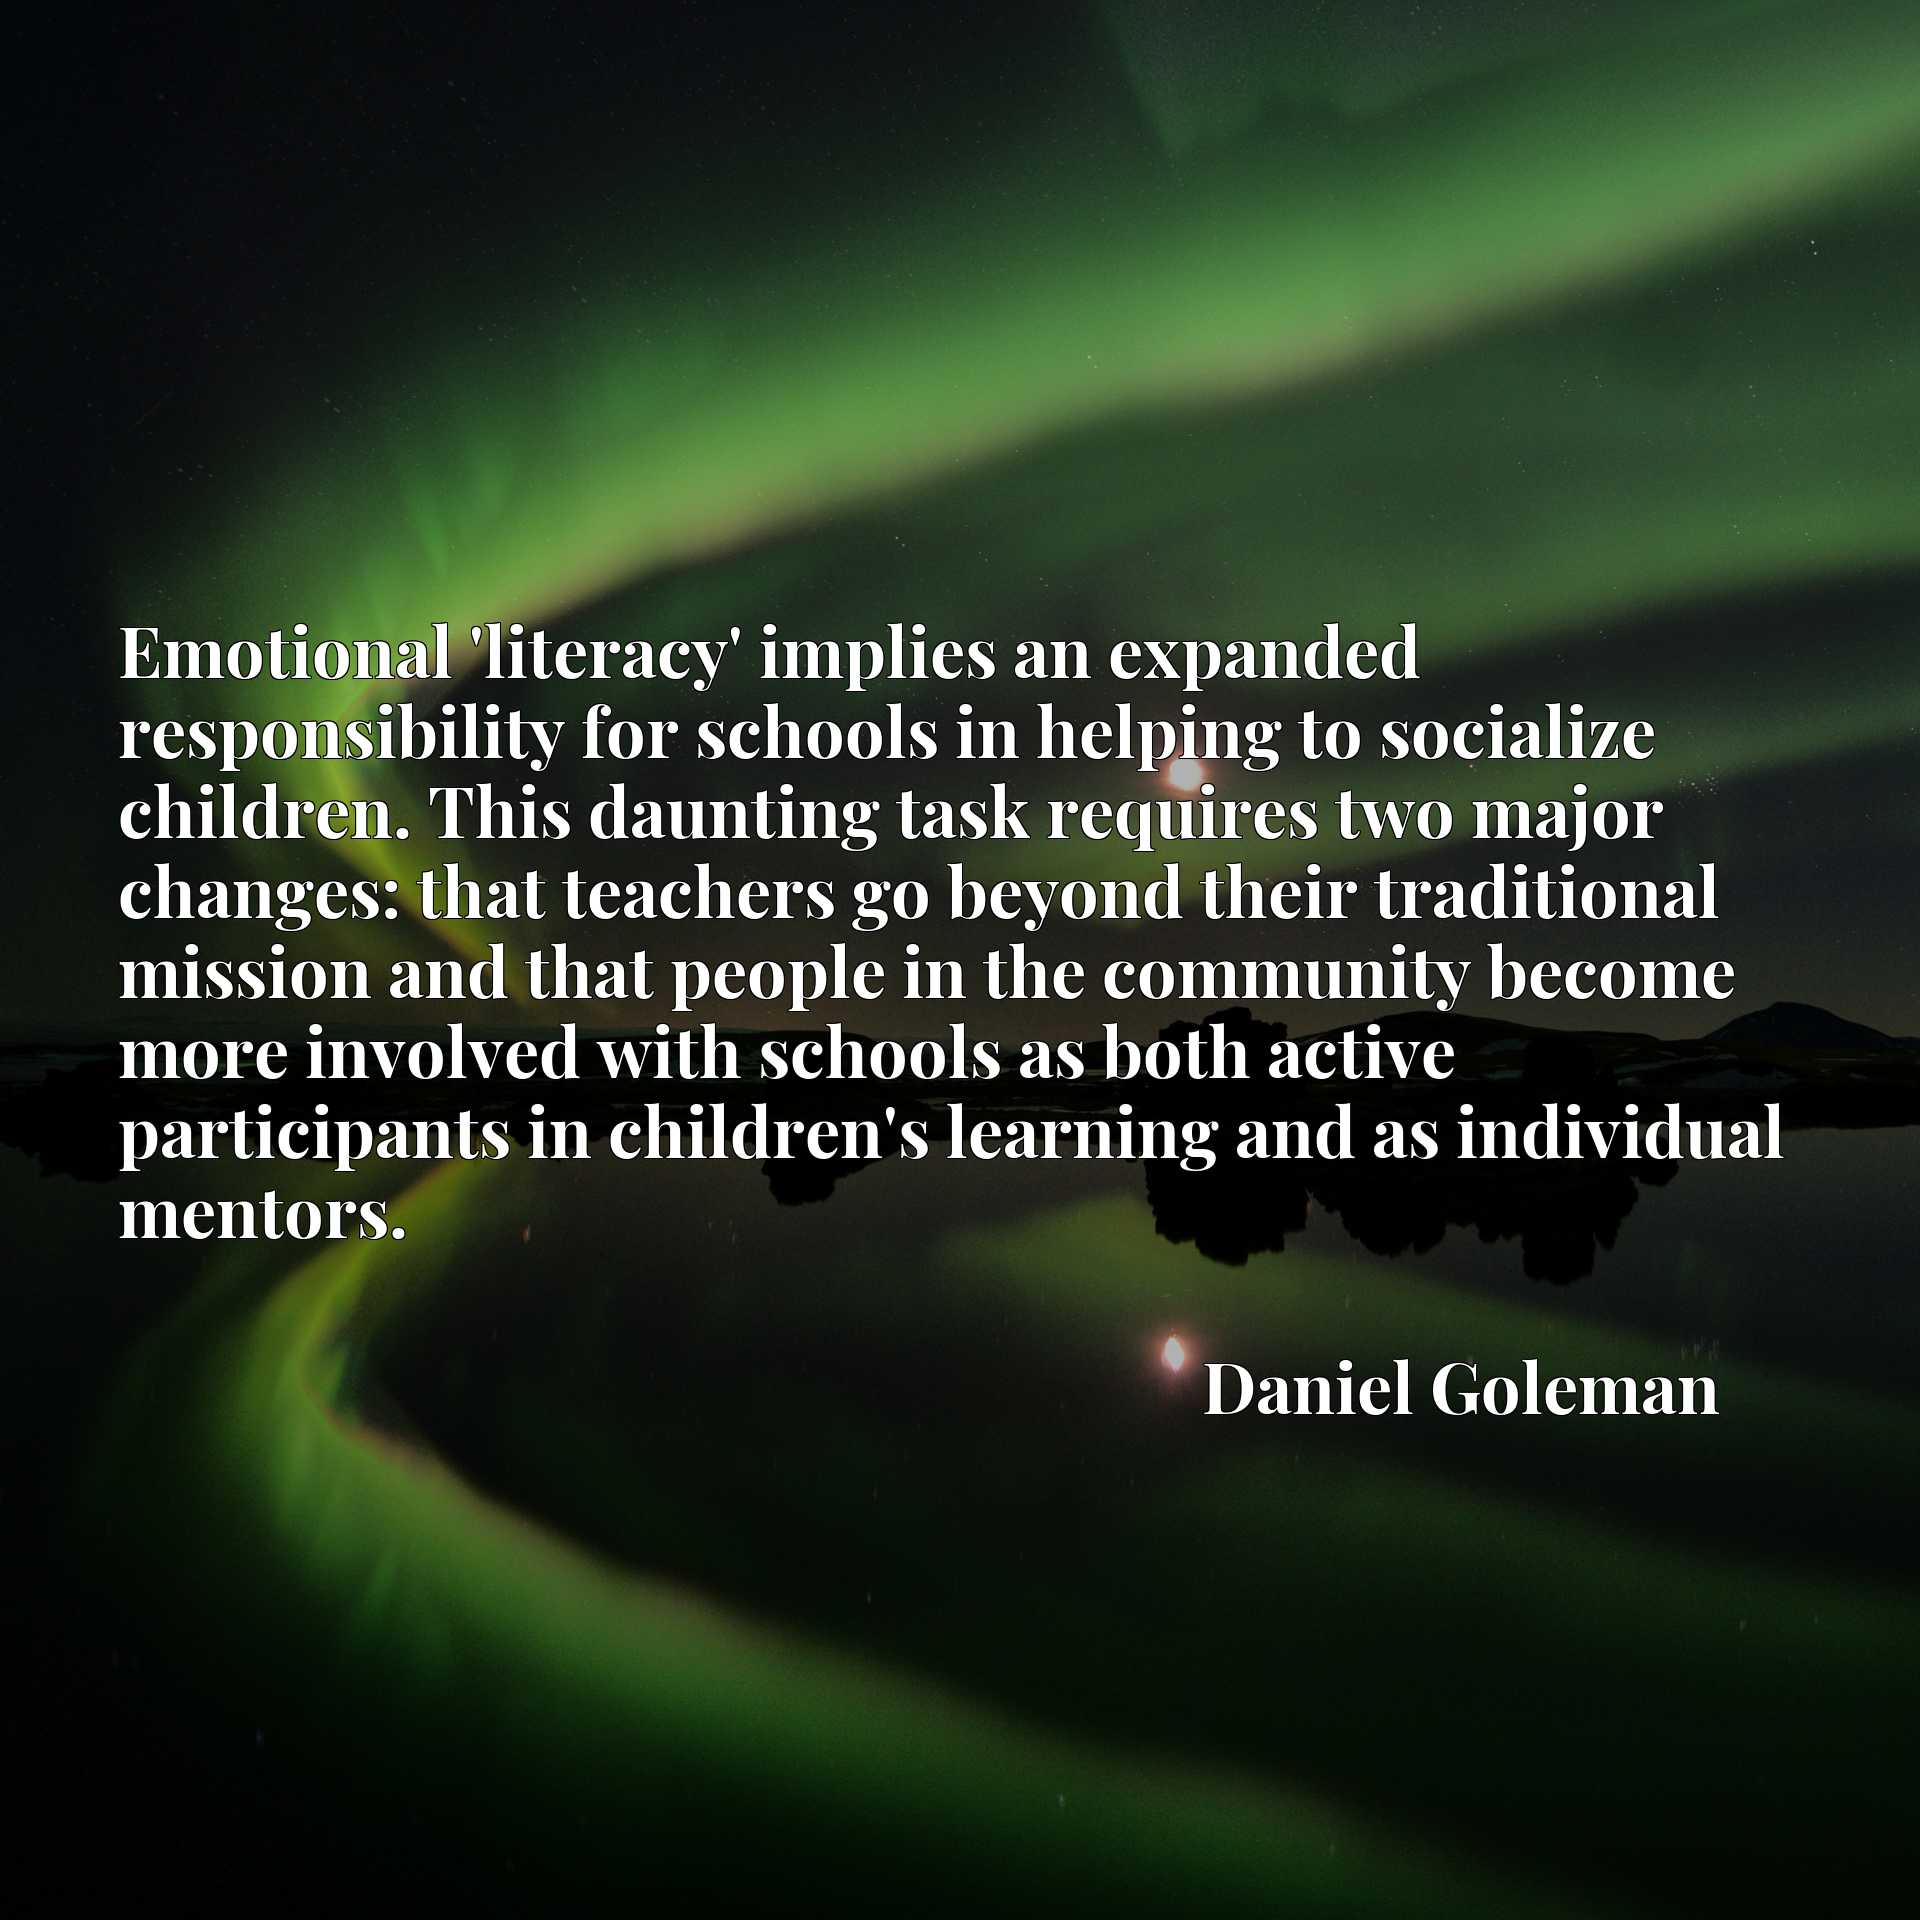 Emotional 'literacy' implies an expanded responsibility for schools in helping to socialize children. This daunting task requires two major changes: that teachers go beyond their traditional mission and that people in the community become more involved with schools as both active participants in children's learning and as individual mentors.